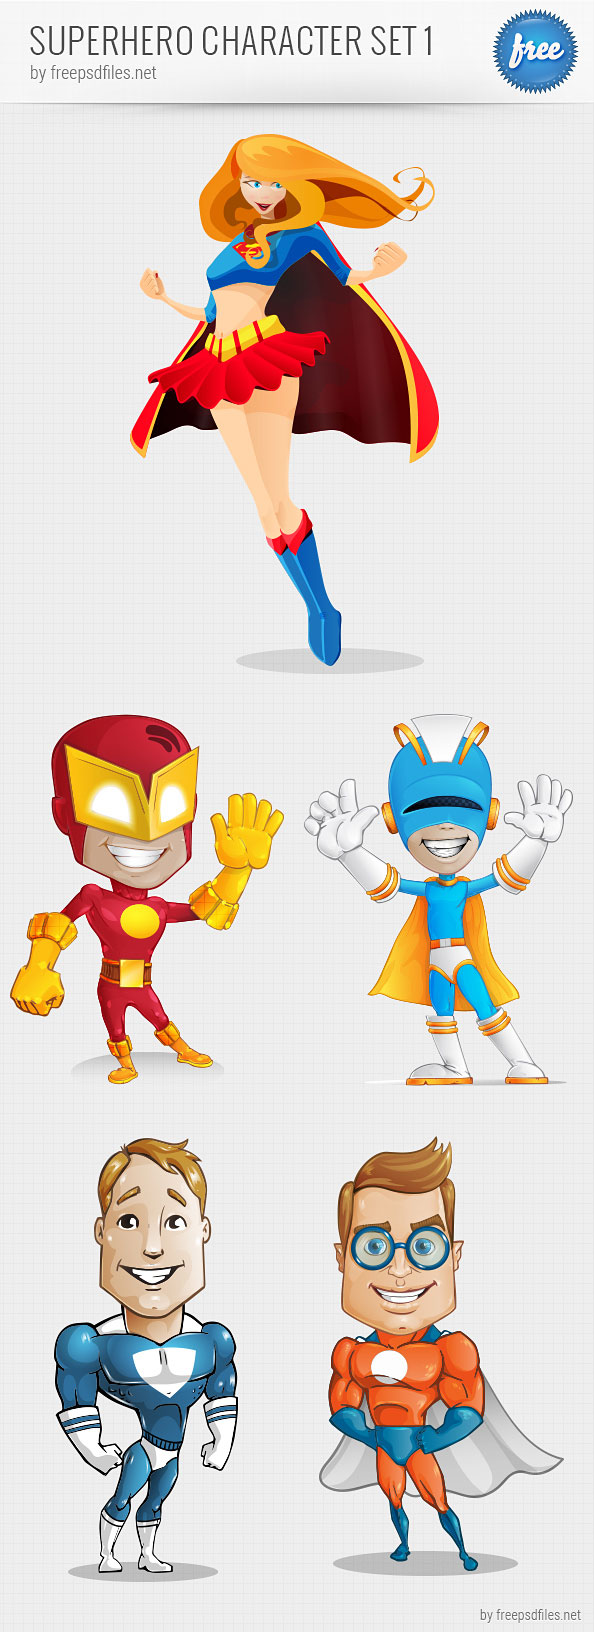 Superhero Vector Character Set - Free PSD Files